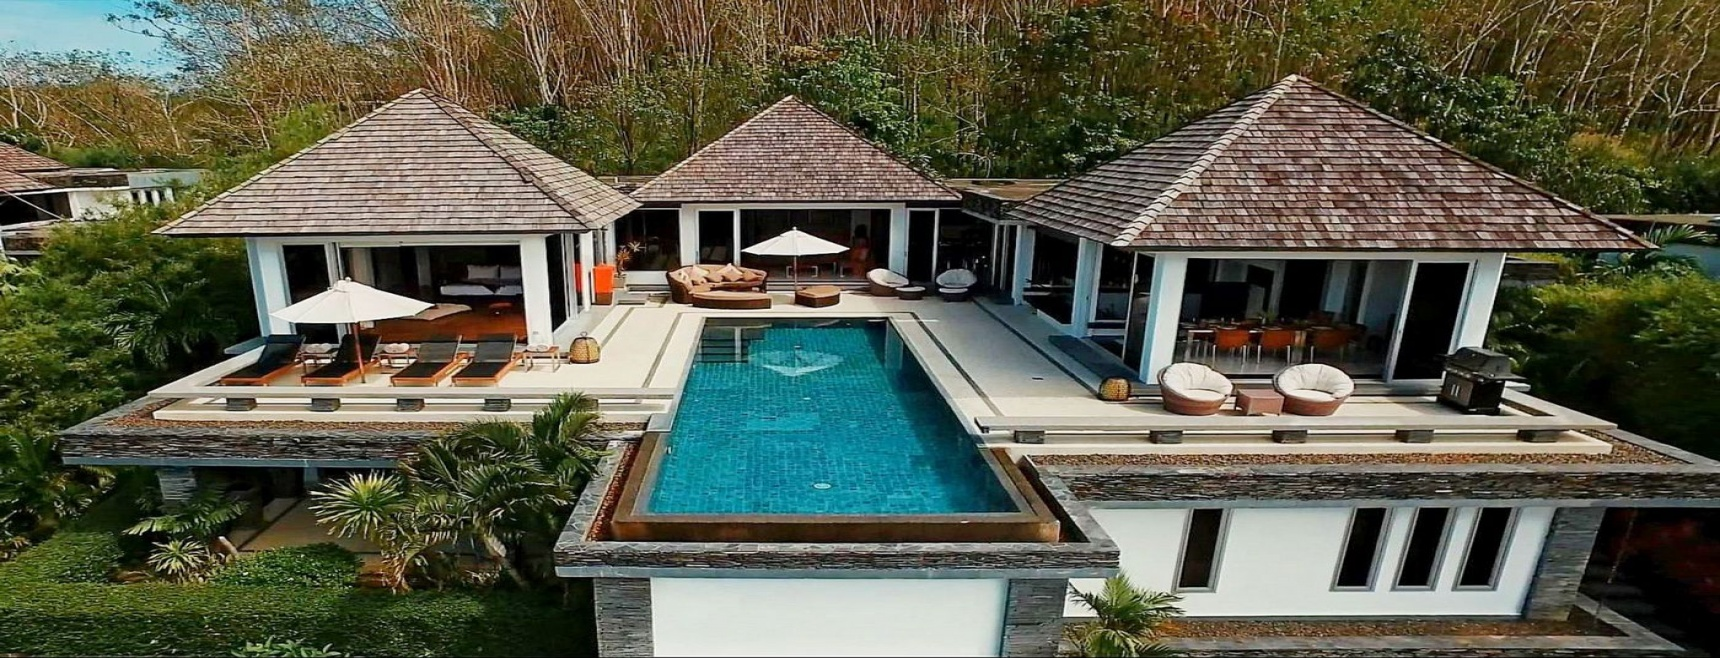 Villa Bauhinia 5 Bedroom(Thai-Real.com)